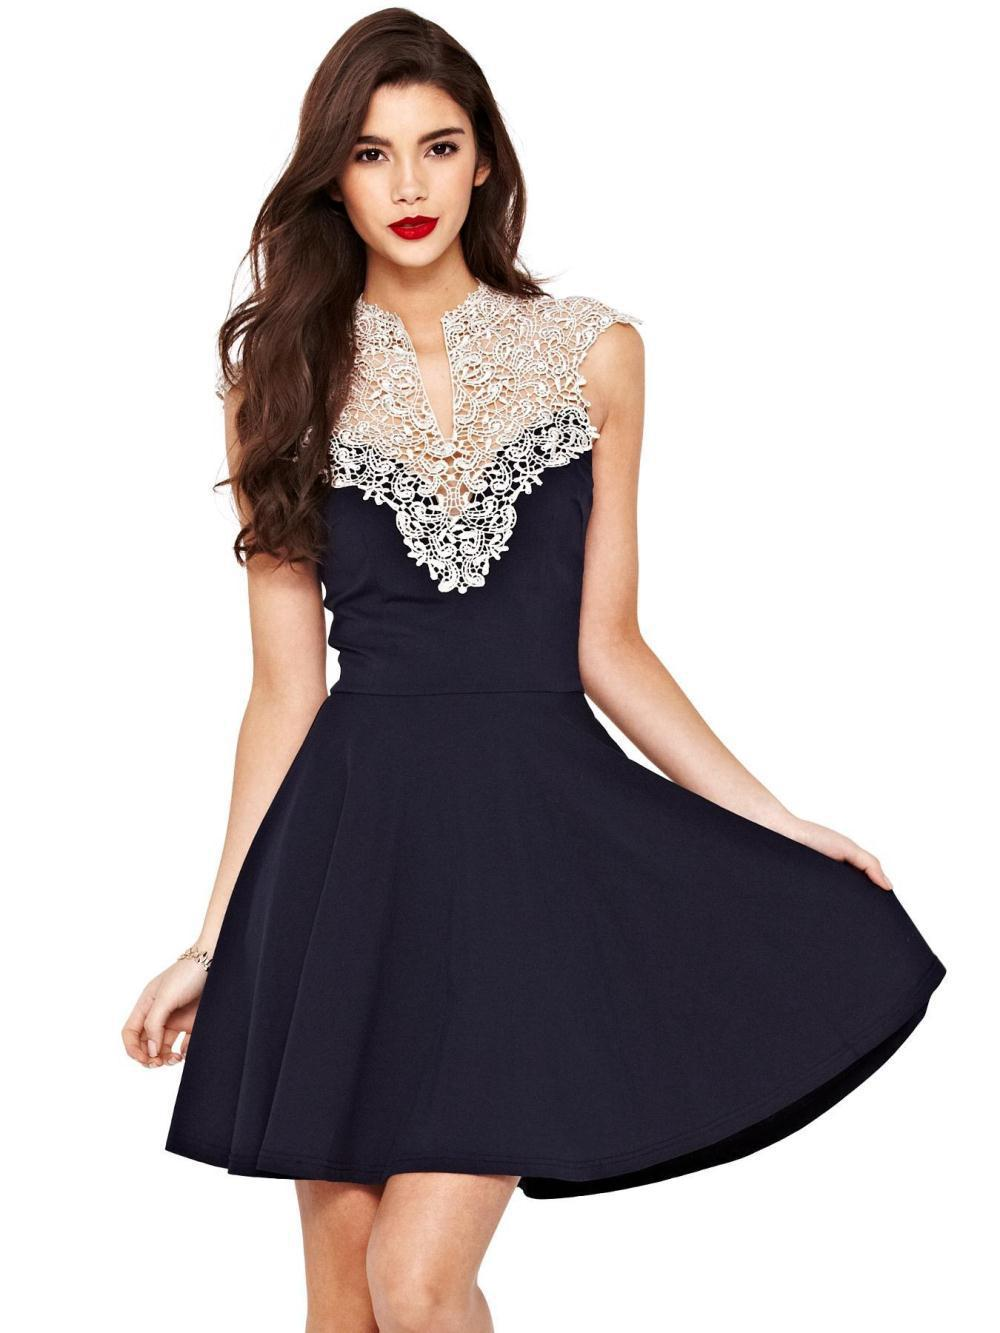 New Arrival 2015 Fashion Sexy Women Lace Dress Crochet Ladies Evening Party Prom Dress Plus Size